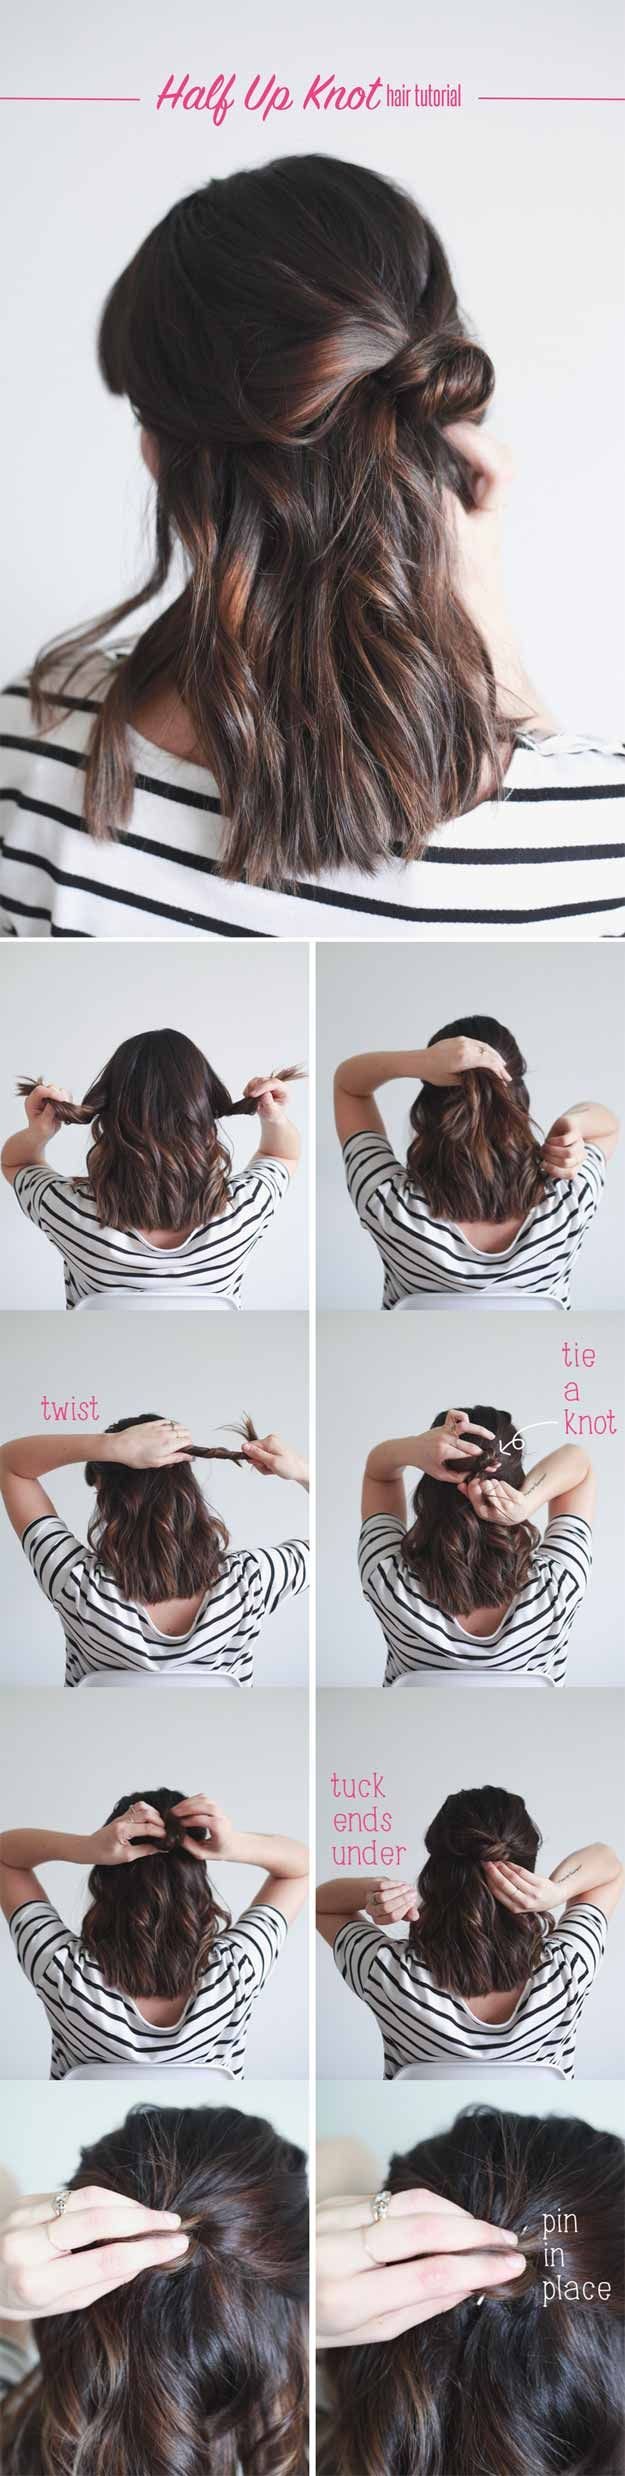 Best Hairstyles For Your 20s -Half Up Knot in 4 Easy Steps- Hair Dos And Don't...